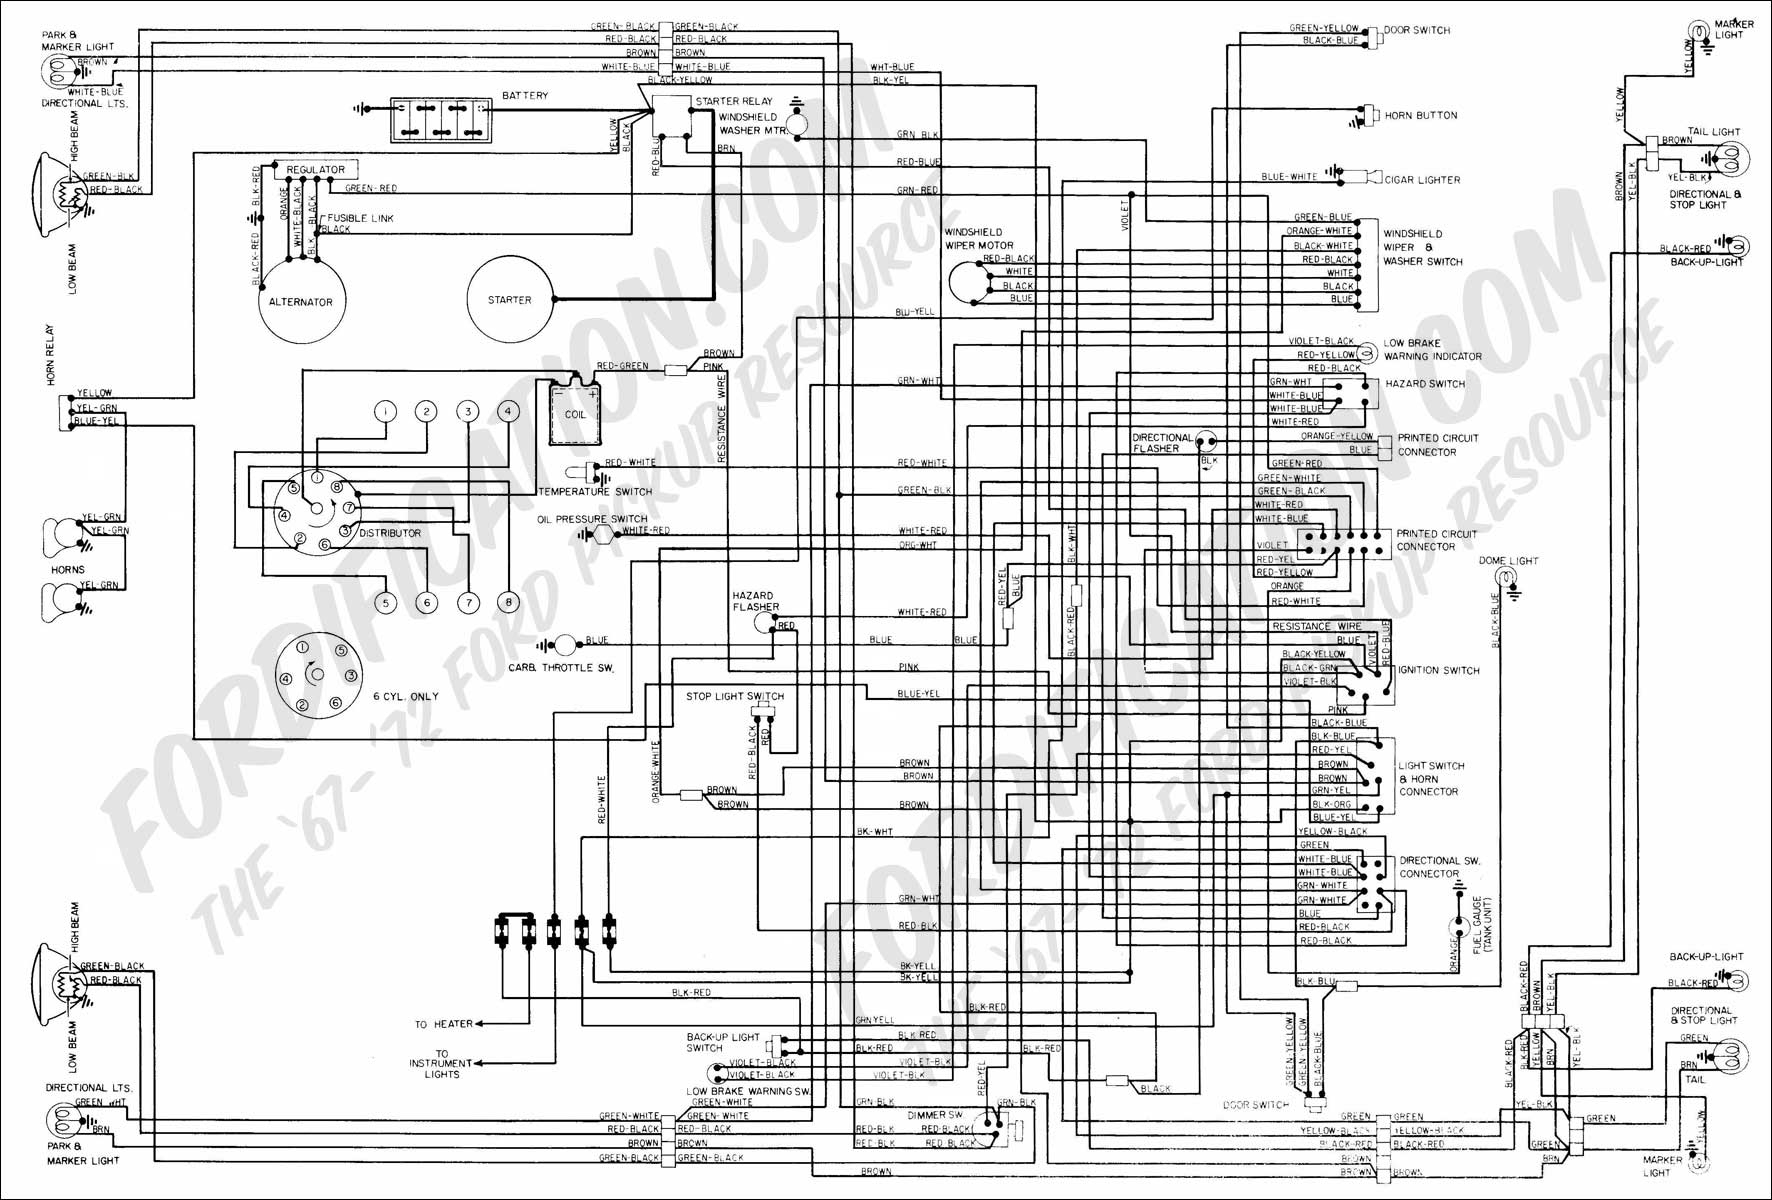 2004 Ford Explorer Radio Wiring Diagram / 2004 Explorer